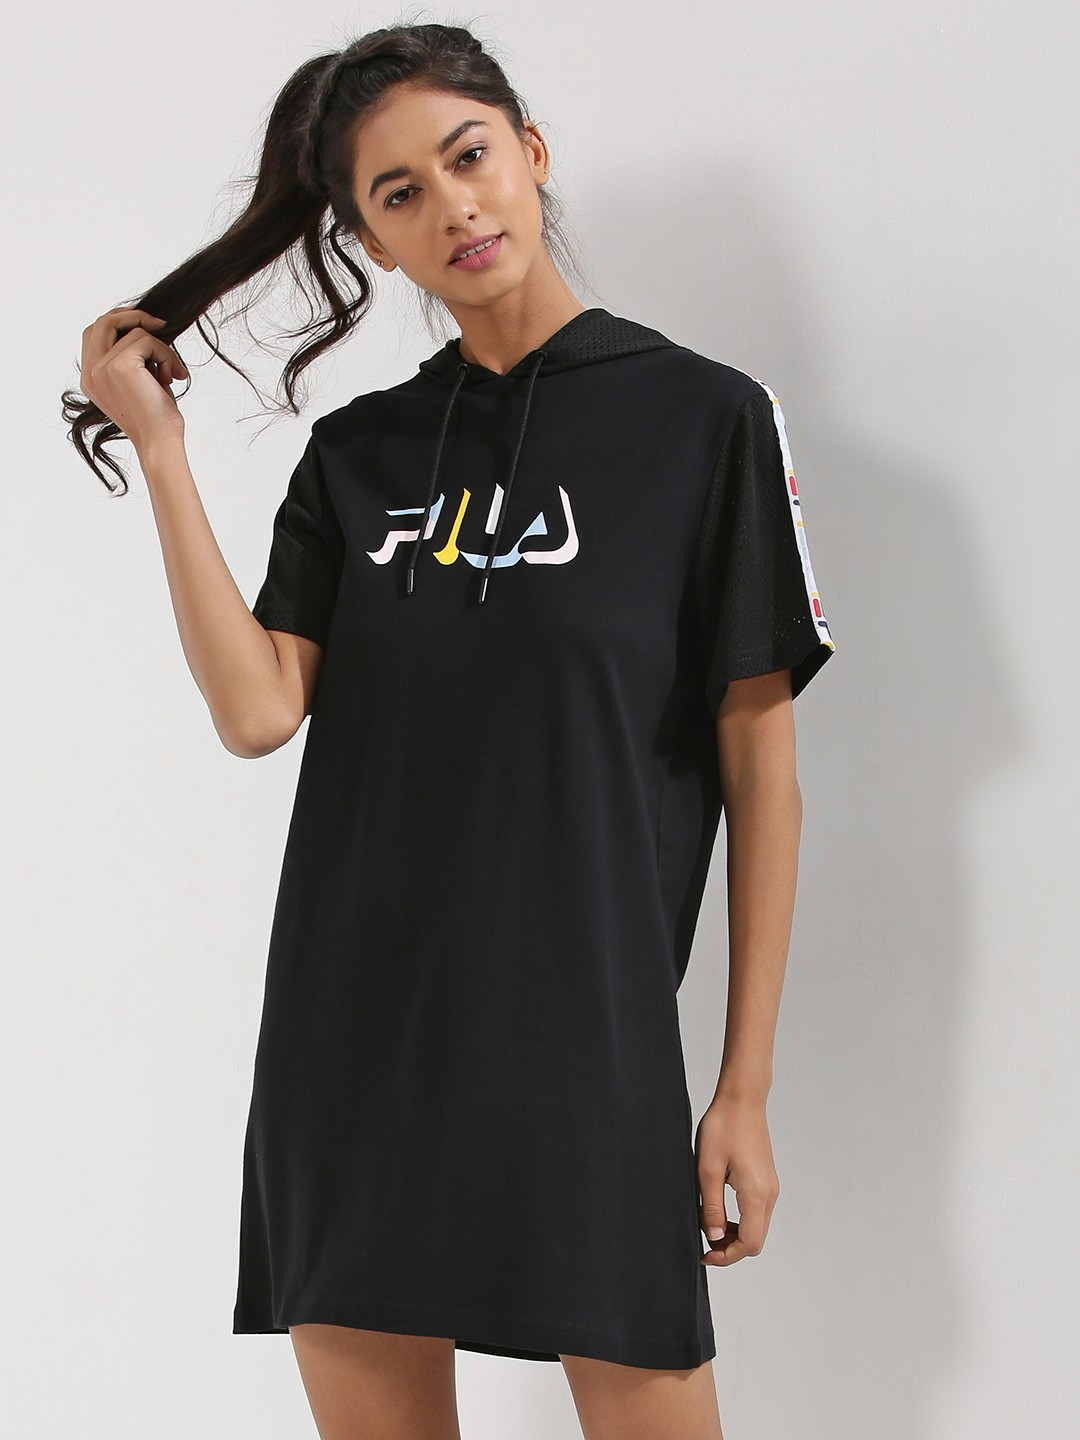 united states new lower prices save up to 60% Buy Fila Black Black Mesh Sleeve Hooded T-Shirt Dress for ...